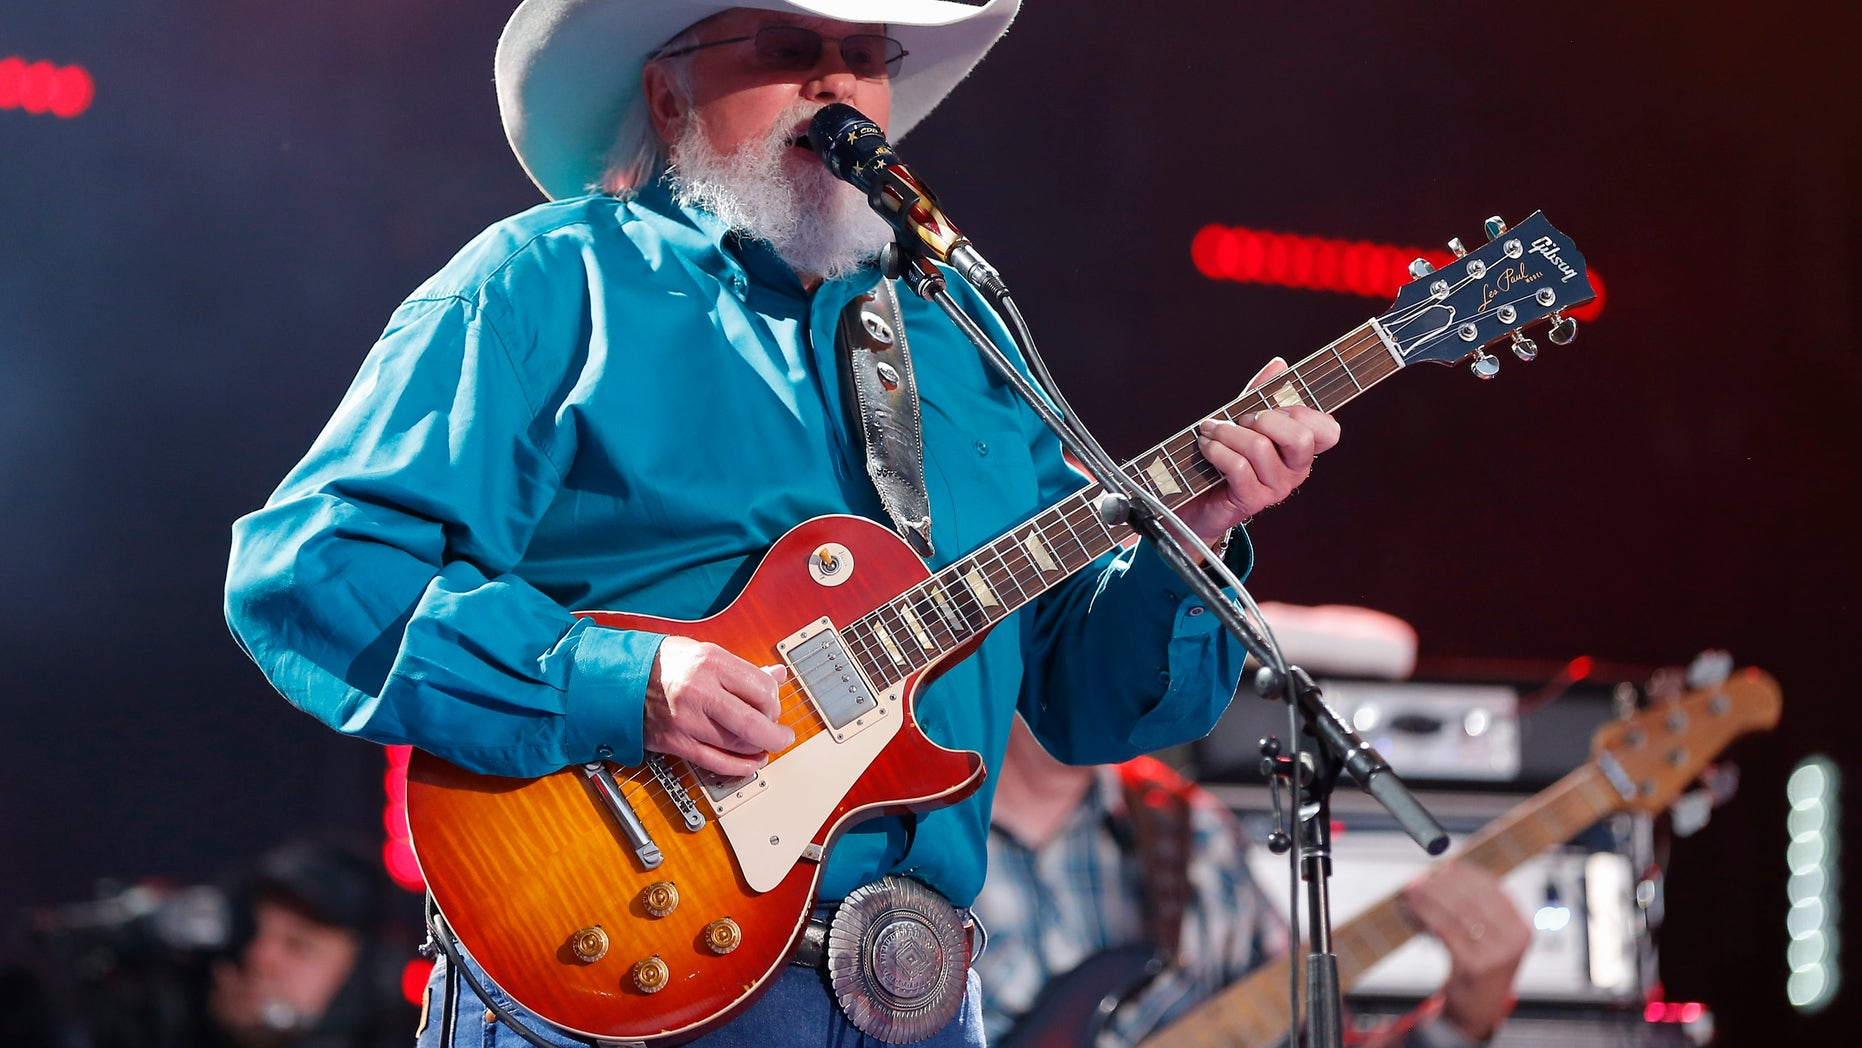 Charlie Daniels performs at the CMA Music Festival at Nissan Stadium on Thursday, June 9, 2016, in Nashville, Tenn. (Photo by Al Wagner/Invision/AP)